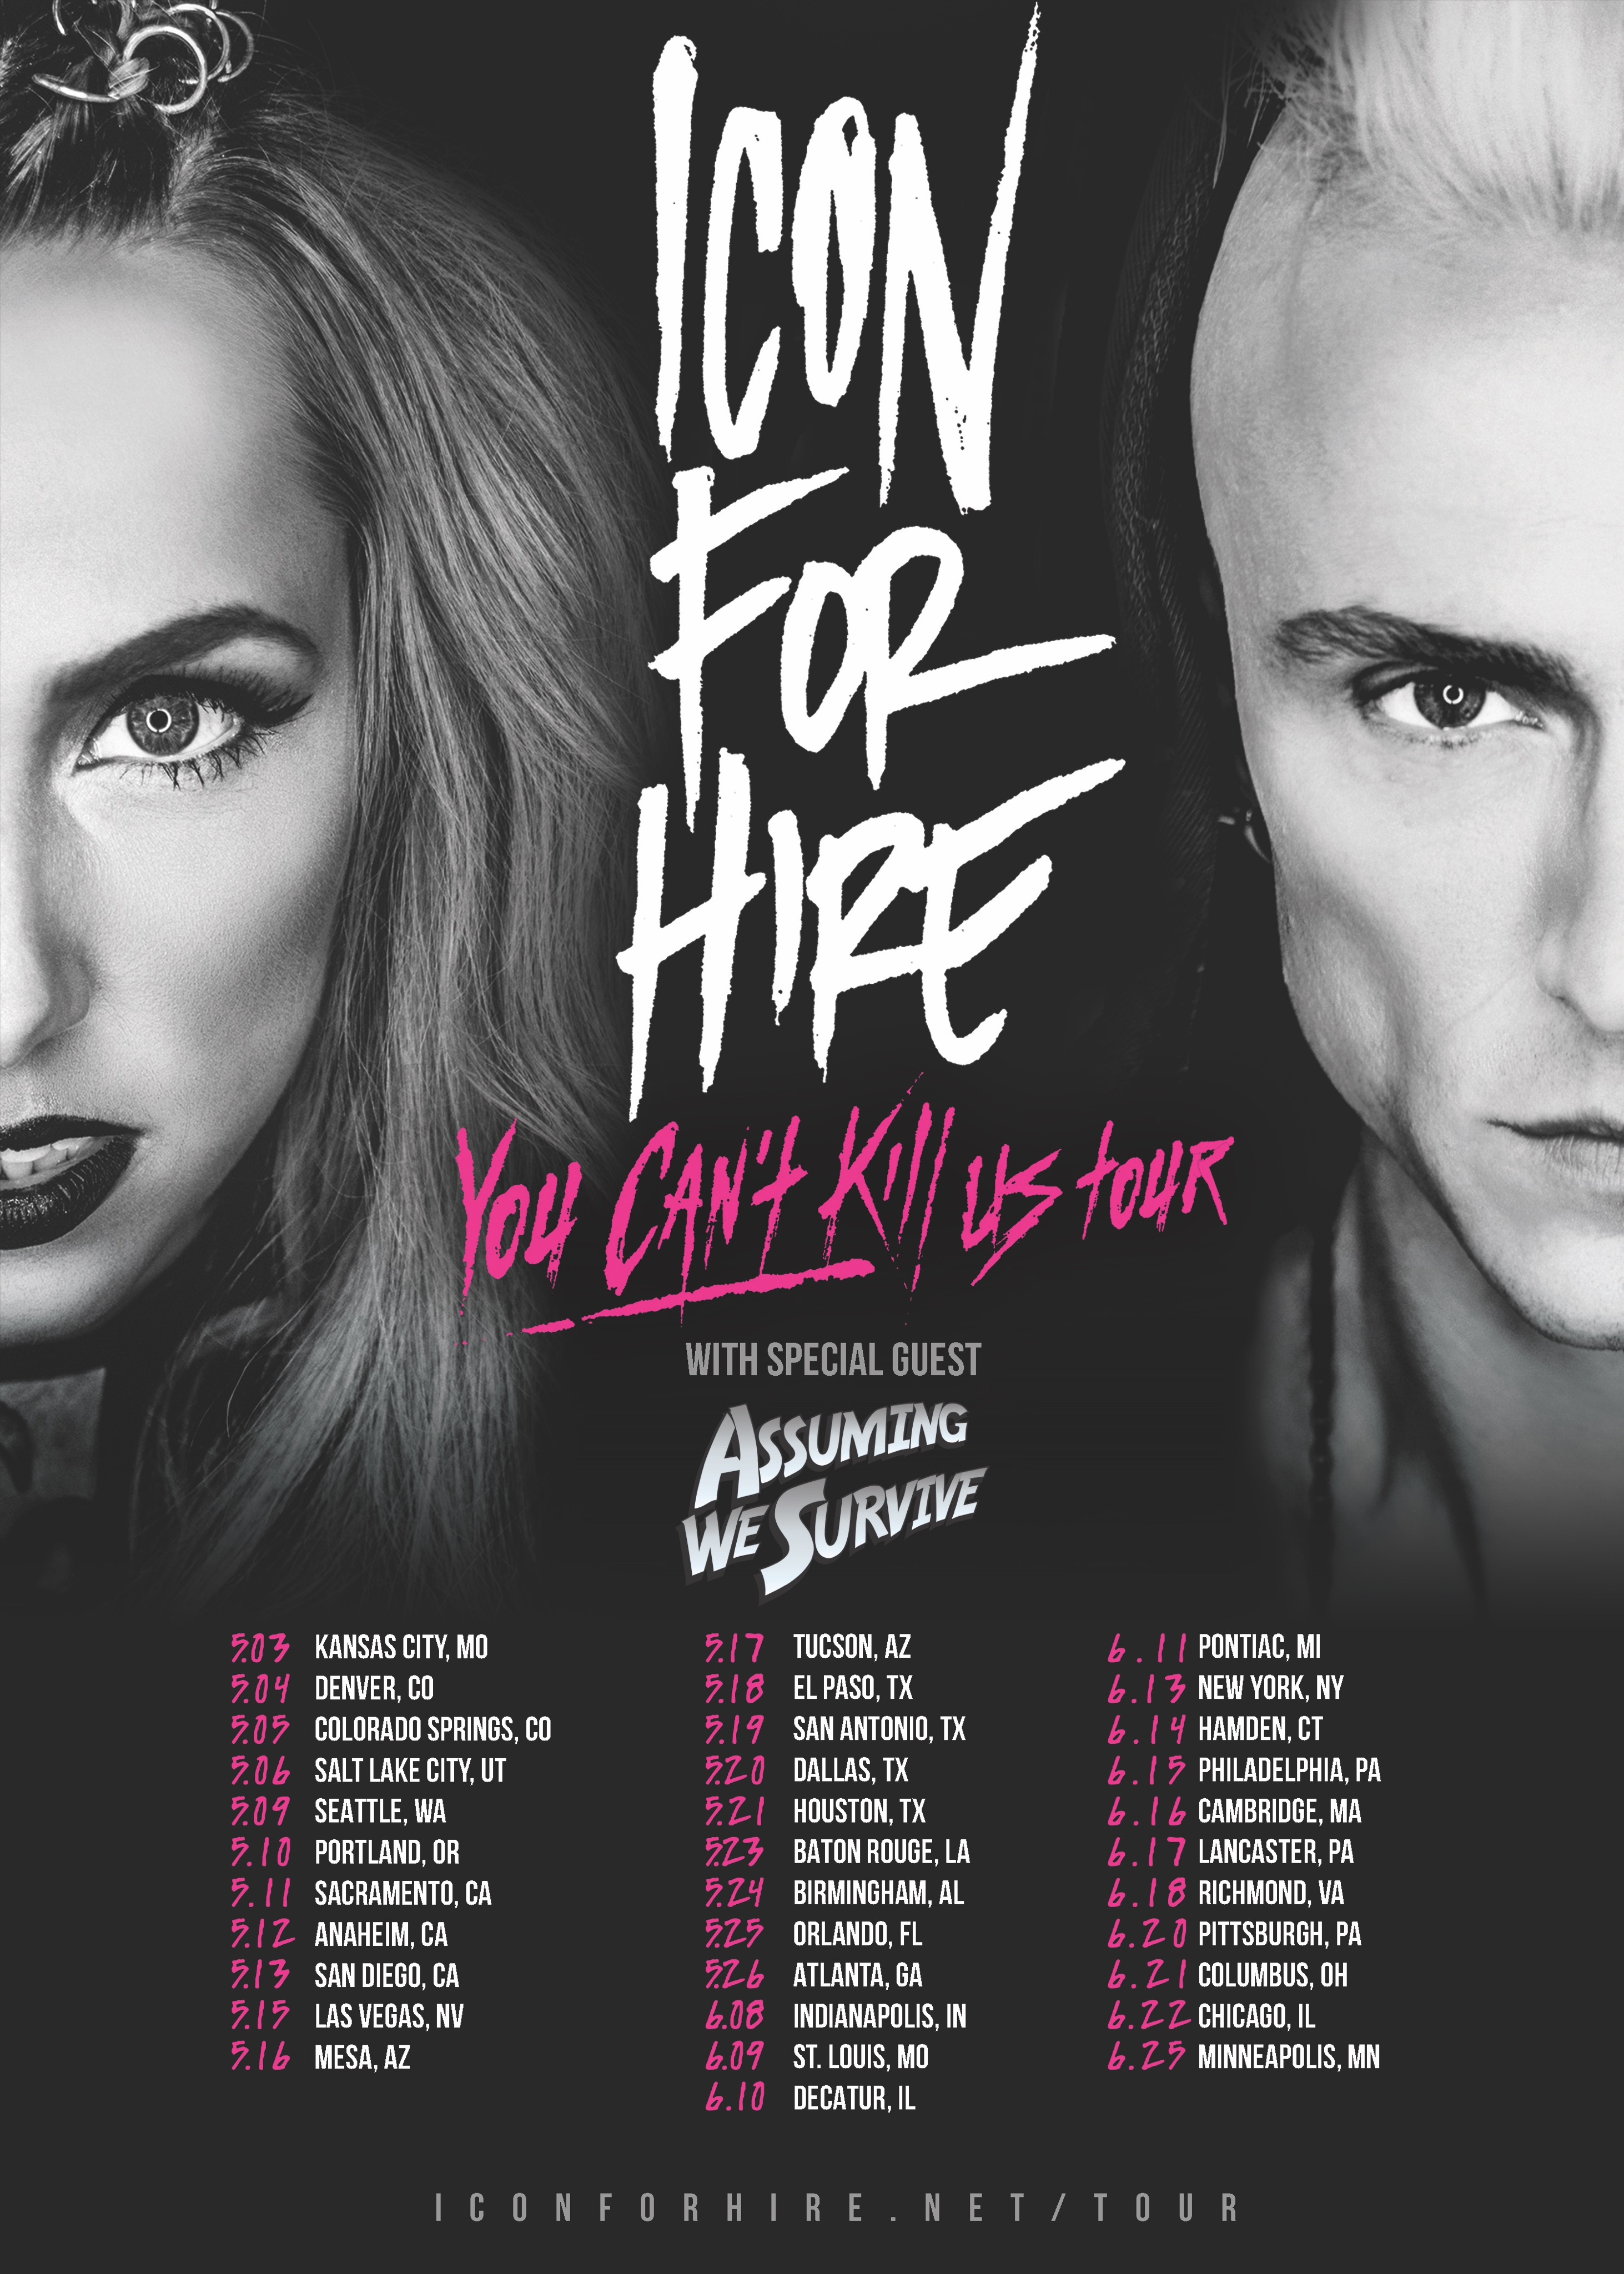 Iconforhire Assumingwesurvive Tourdates.jpg